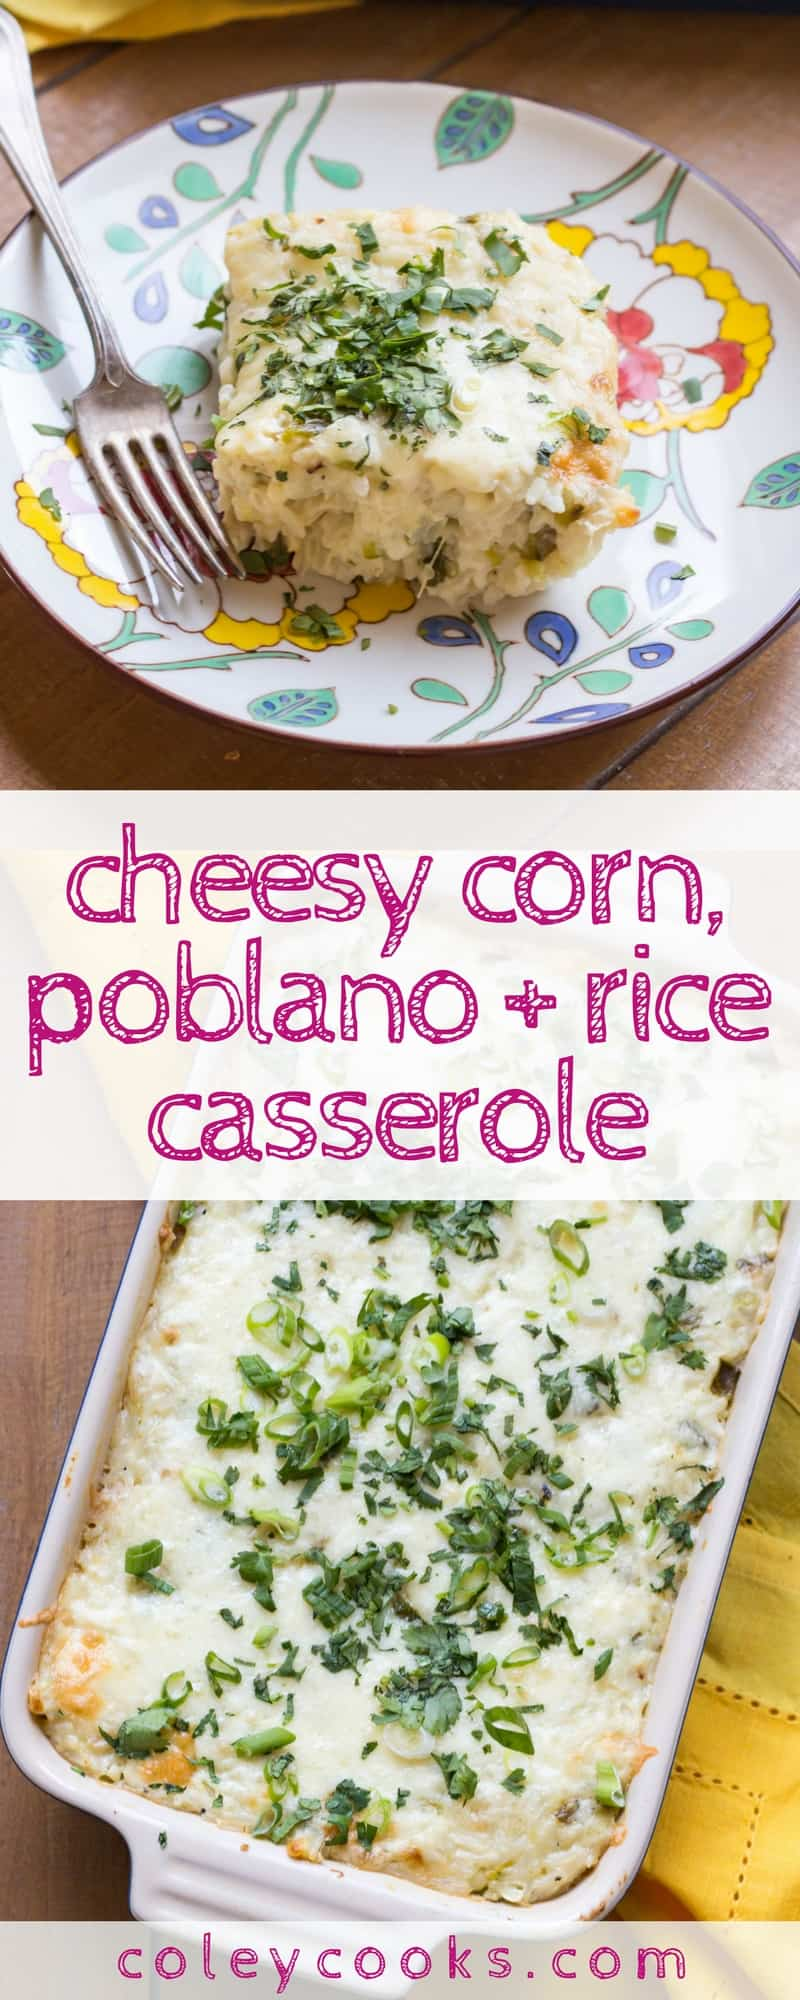 CHEESY CORN, POBLANO + RICE CASSEROLE   Easy to make, feeds a crowd, and is absolutely delicious! Makes a great side with tacos, fajitas, enchiladas and any other Mexican food #glutenfree   ColeyCooks.com